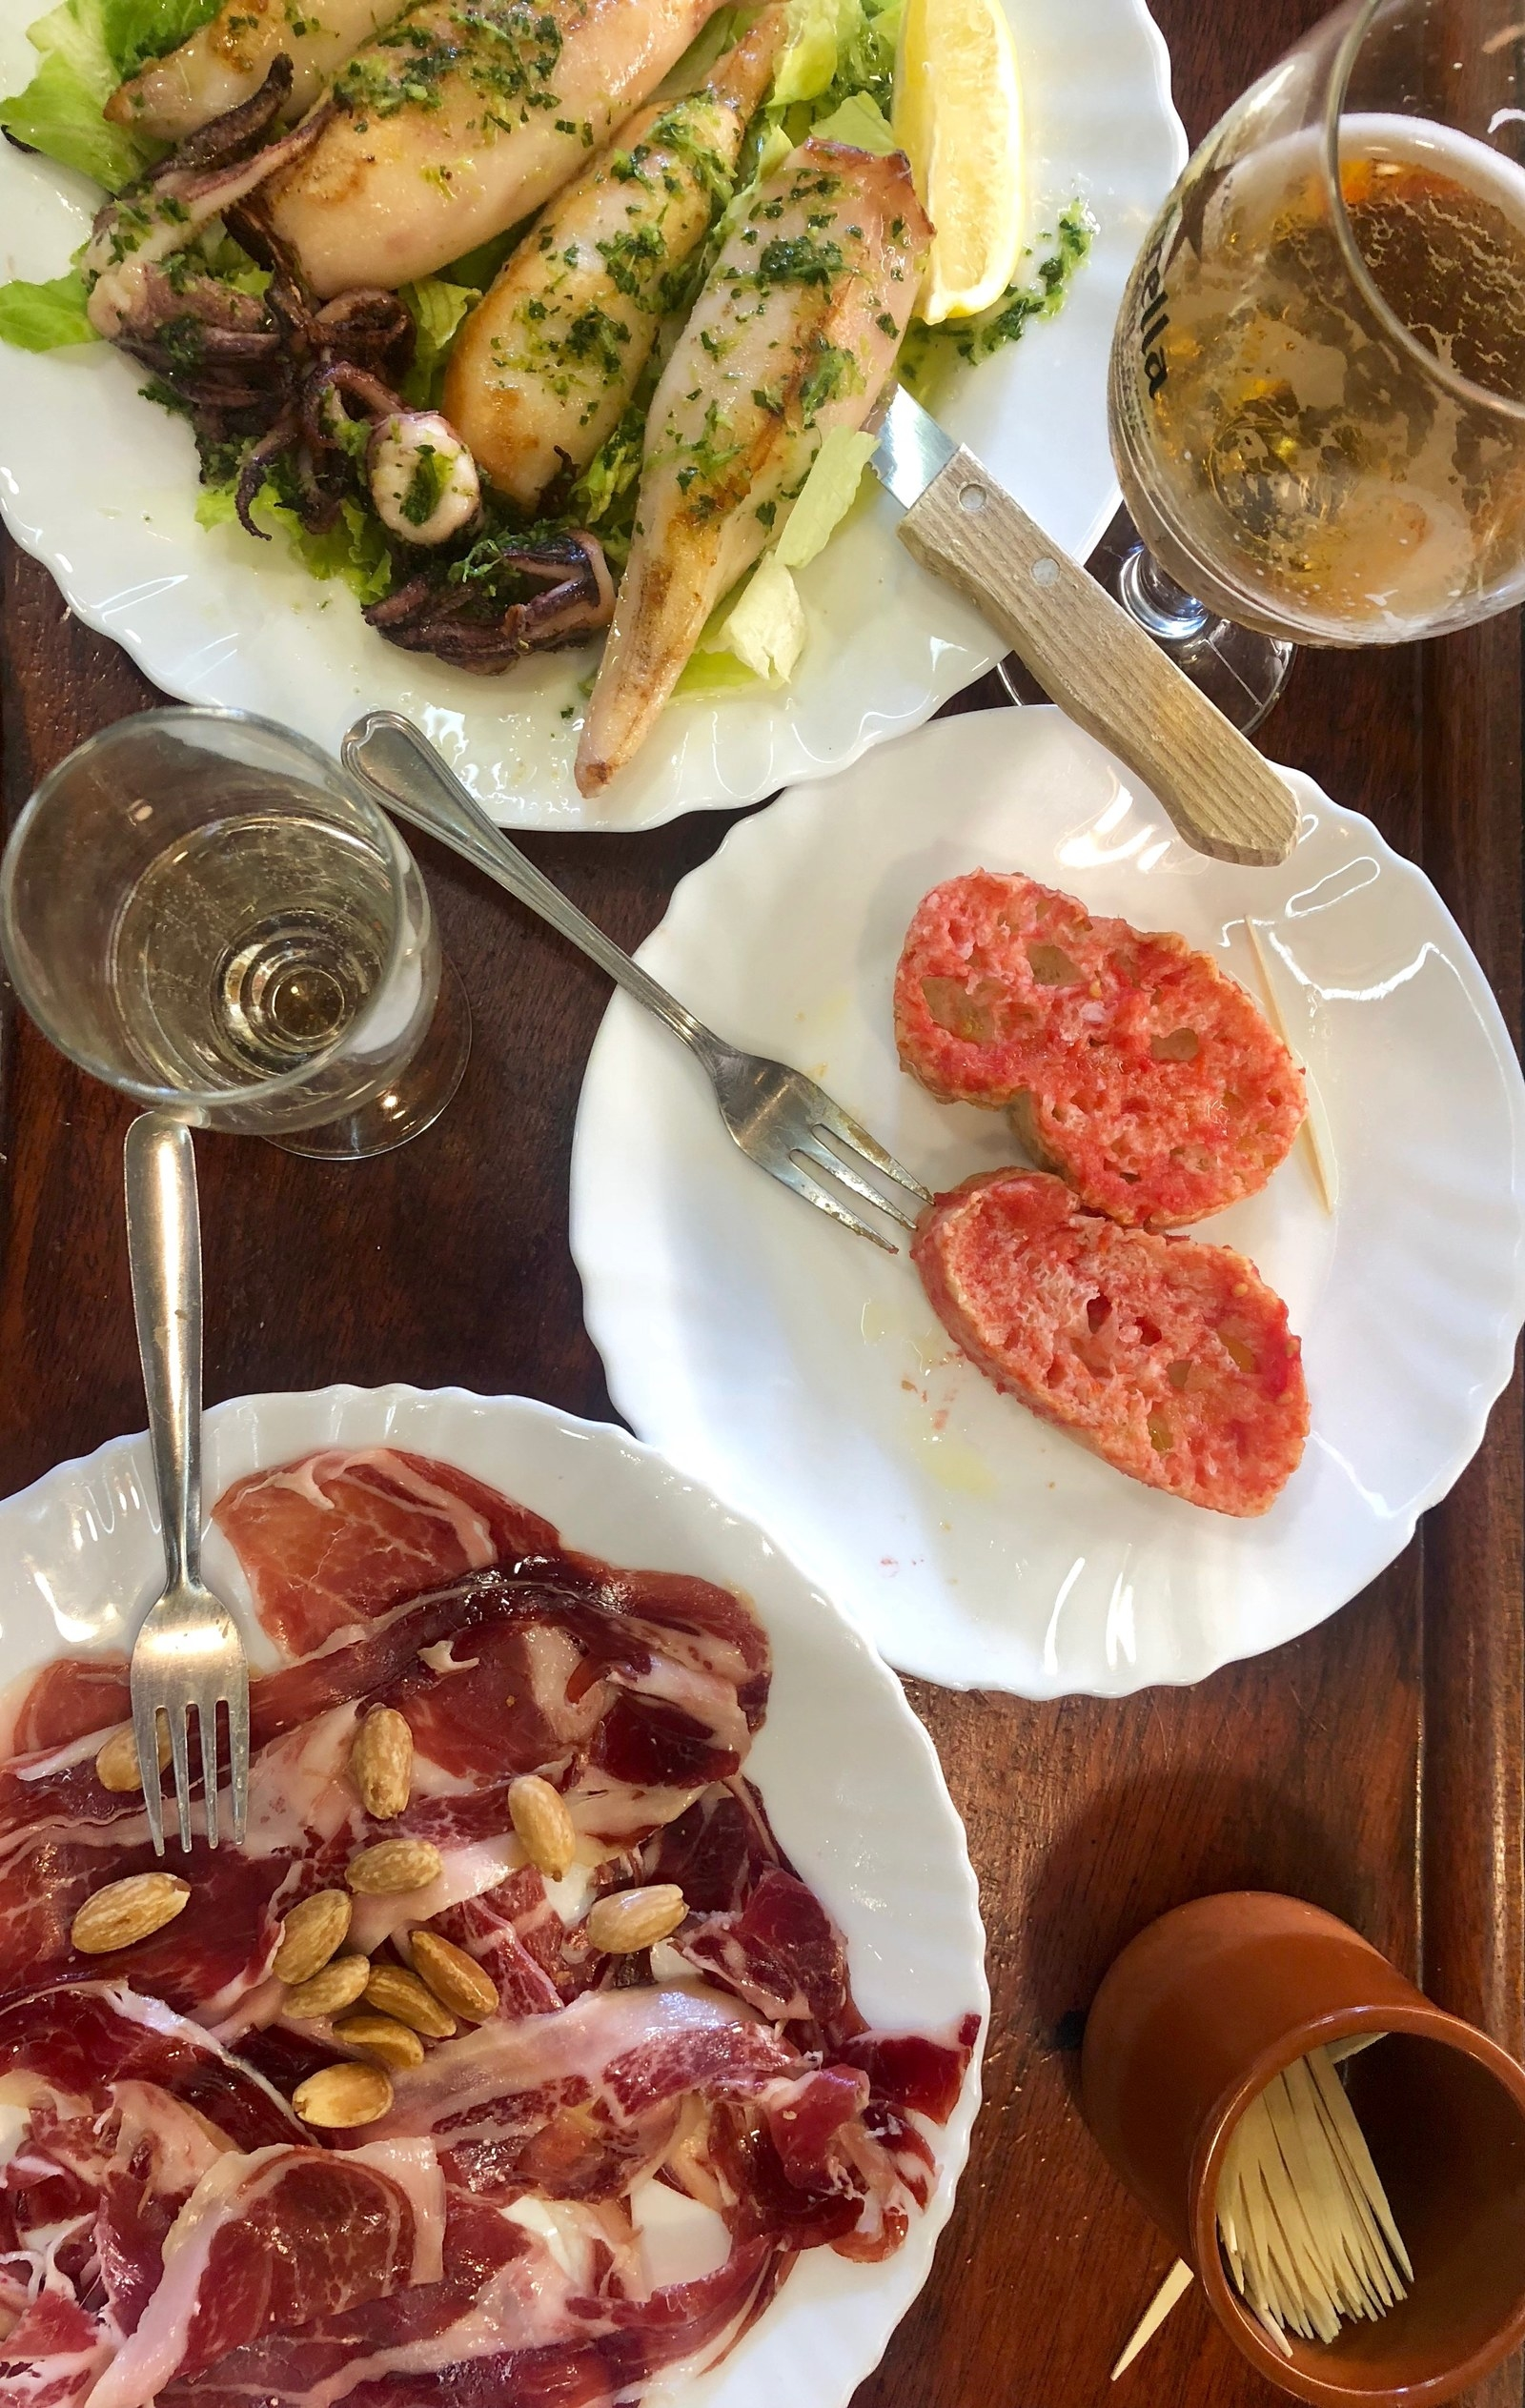 This neighborhood haunt in the Barceloneta neighborhood is the perfect pit stop after a morning at the beach. The portions are generous and the prices are low, which means there's usually a crowd. The jamon ibérico melts in your mouth like butter, and it tastes like heaven on a slice of pan tomate, toasted bread smothered in garlic, tomato, and olive oil.